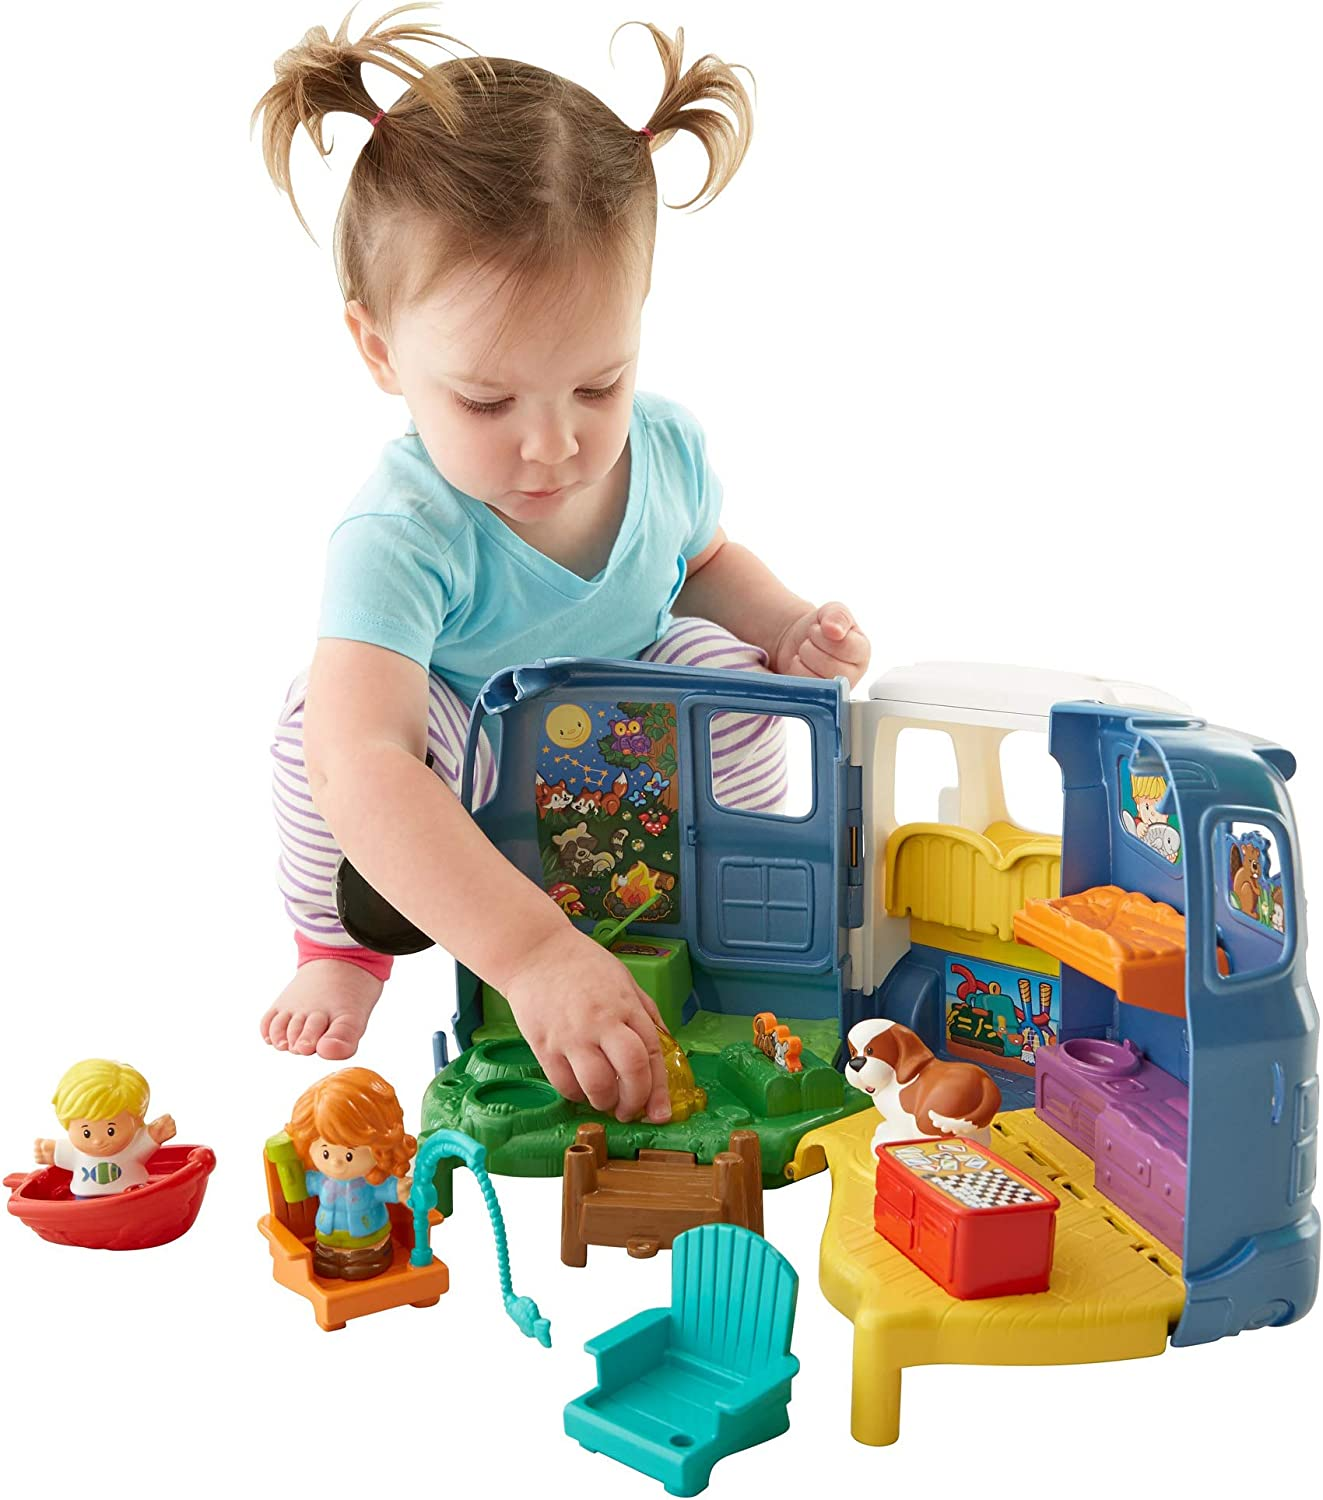 9 Best Fisher Price Little People Reviews in 2021 11